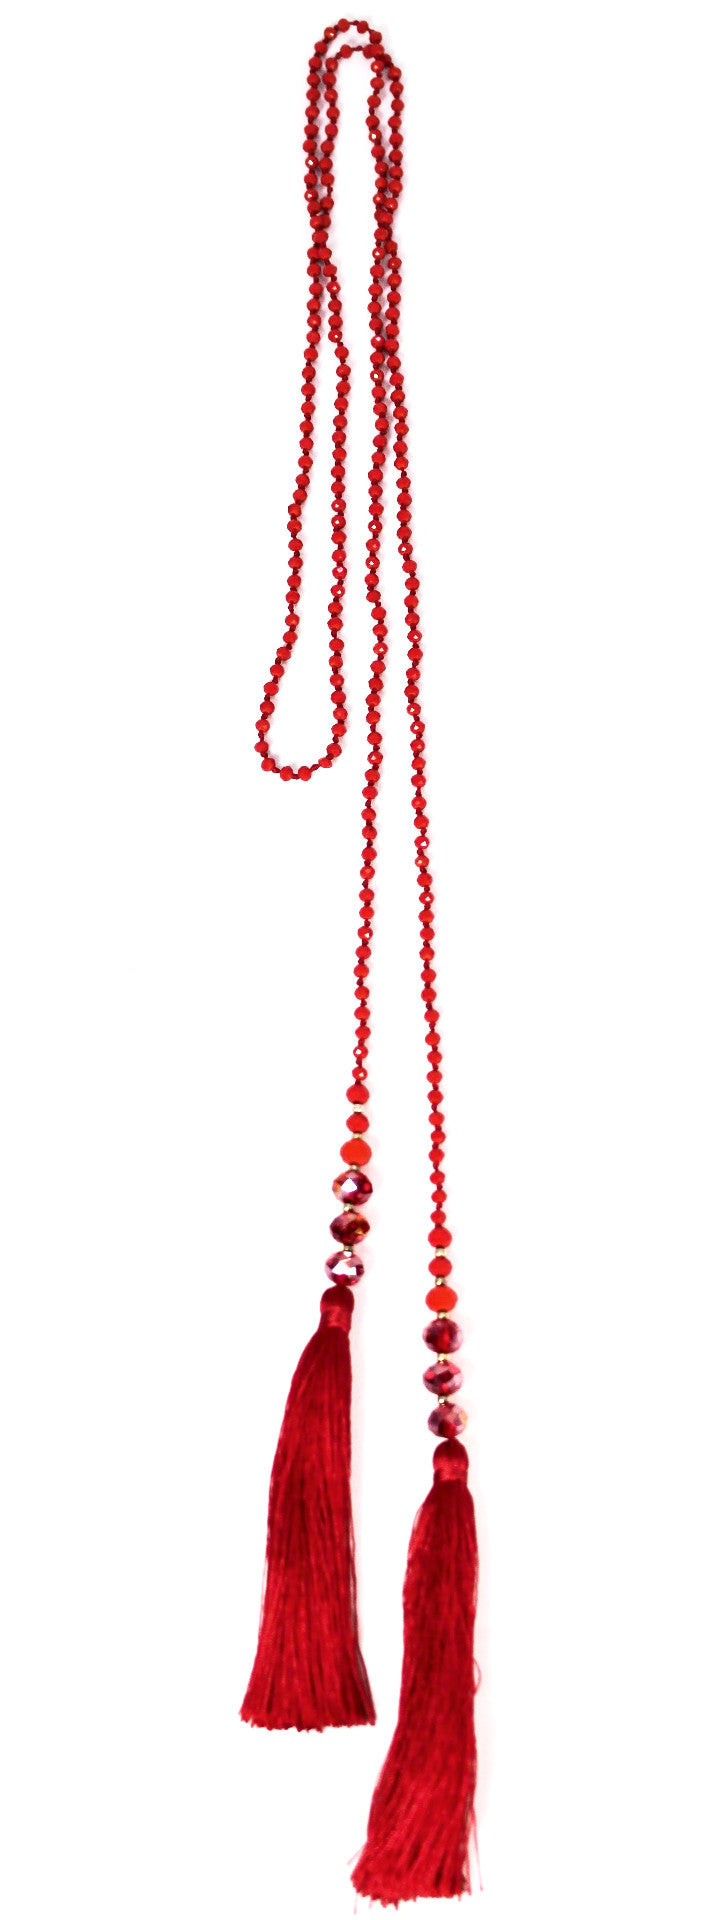 Red Beaded Double Tassel Necklace - Bridges to Borders